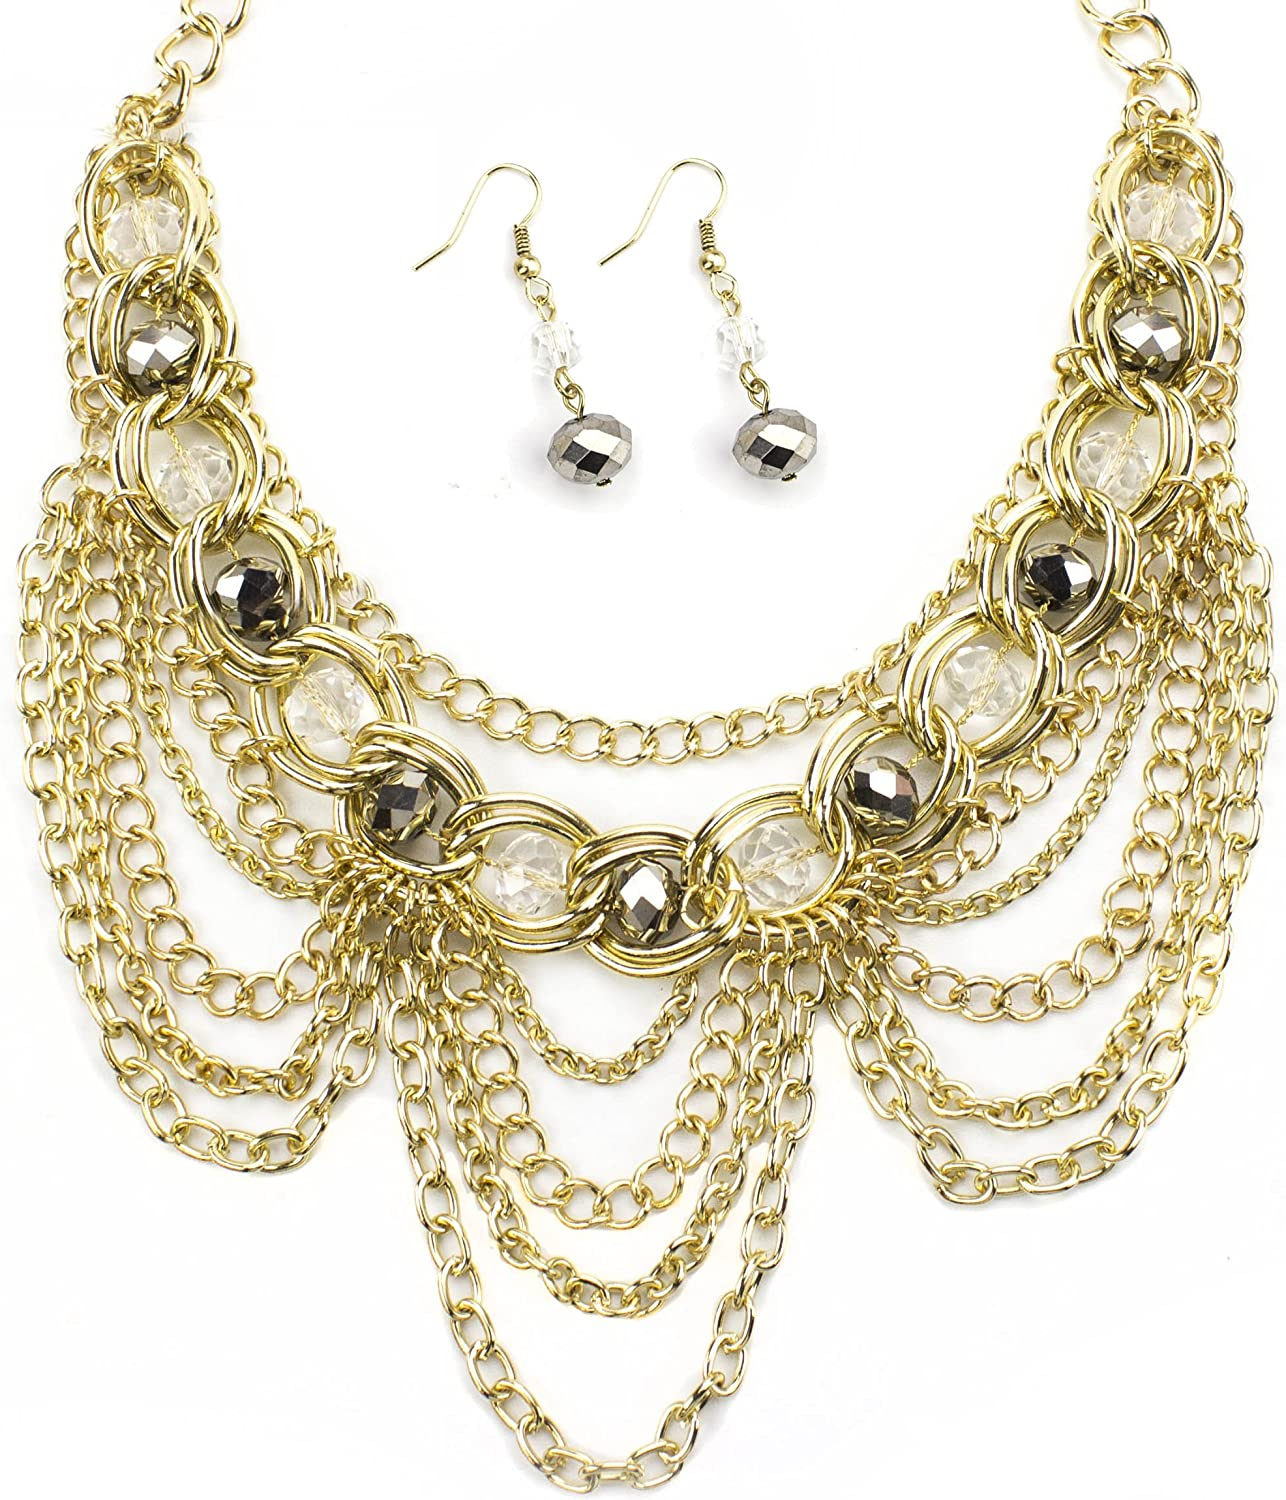 LookLove Womens Jewelry Gold Max 58% OFF Super Special SALE held Chain and Earrin Necklace Statement